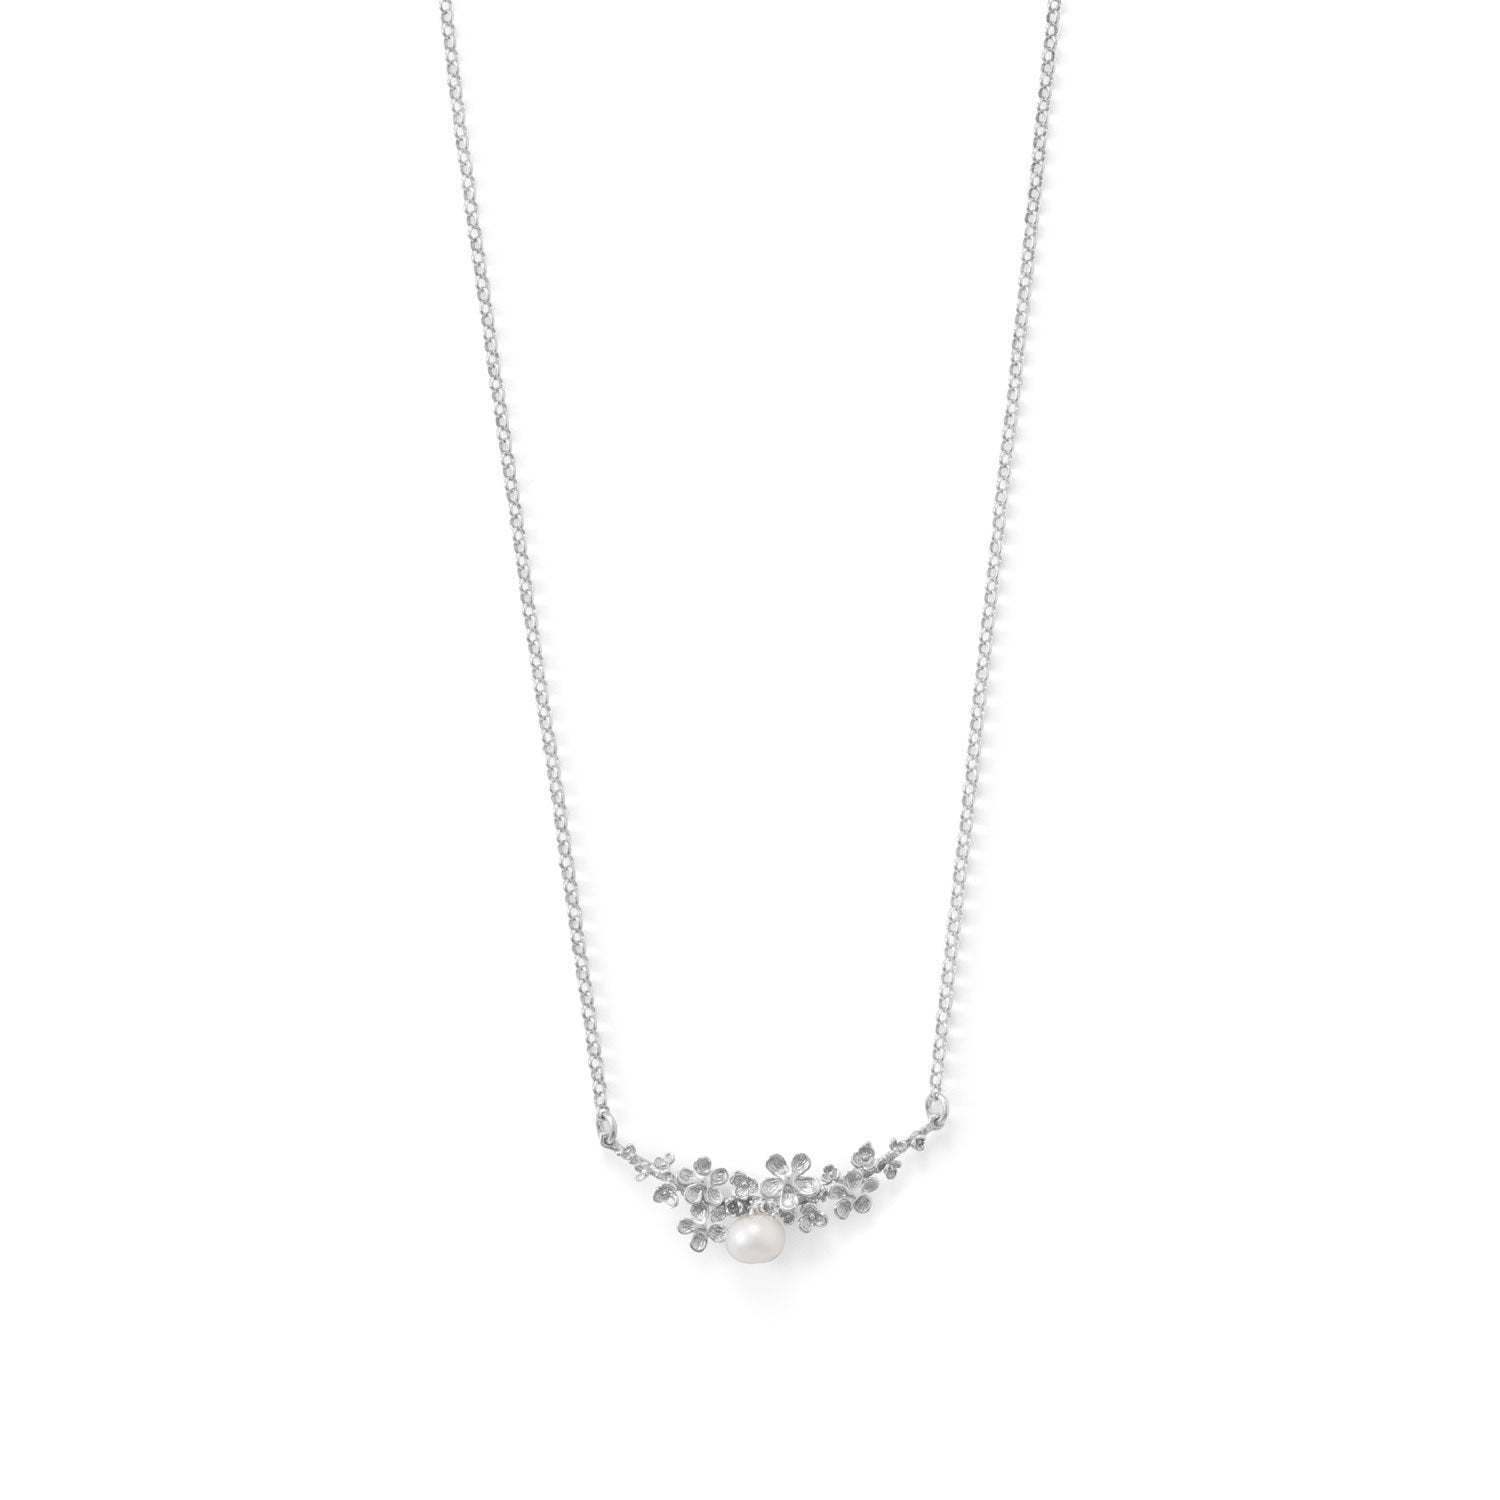 Rhodium Plated Decorative Flower and Cultured Freshwater Pearl Bar Necklace - Rocky Mt. Outlet Inc - Shop & Save 24/7